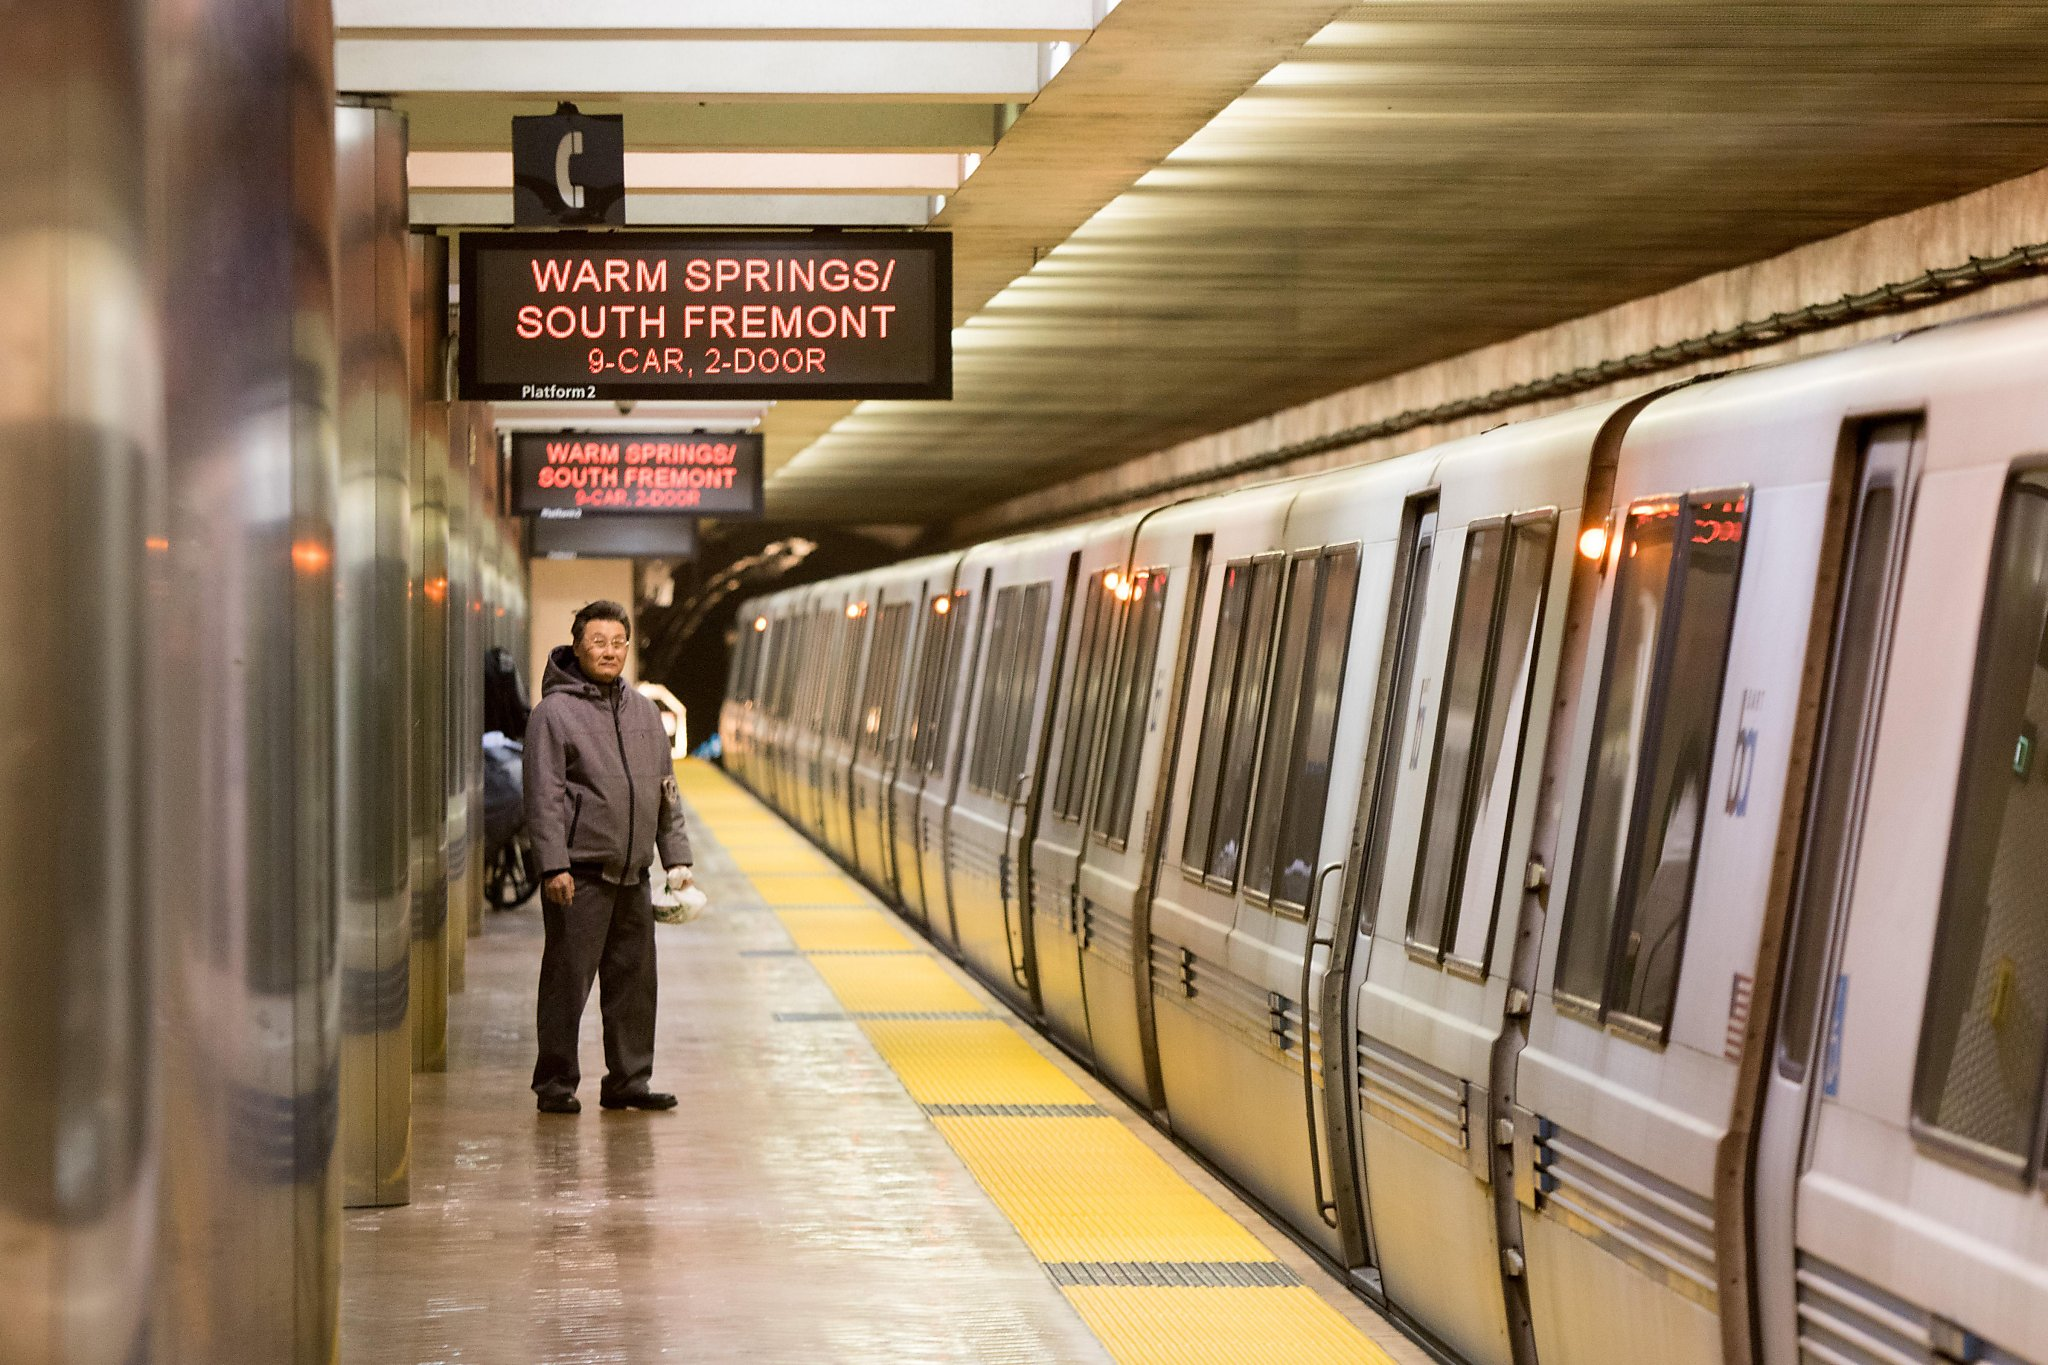 Coronavirus: BART cuts service to 2 trains per hour as devastating financial losses mount